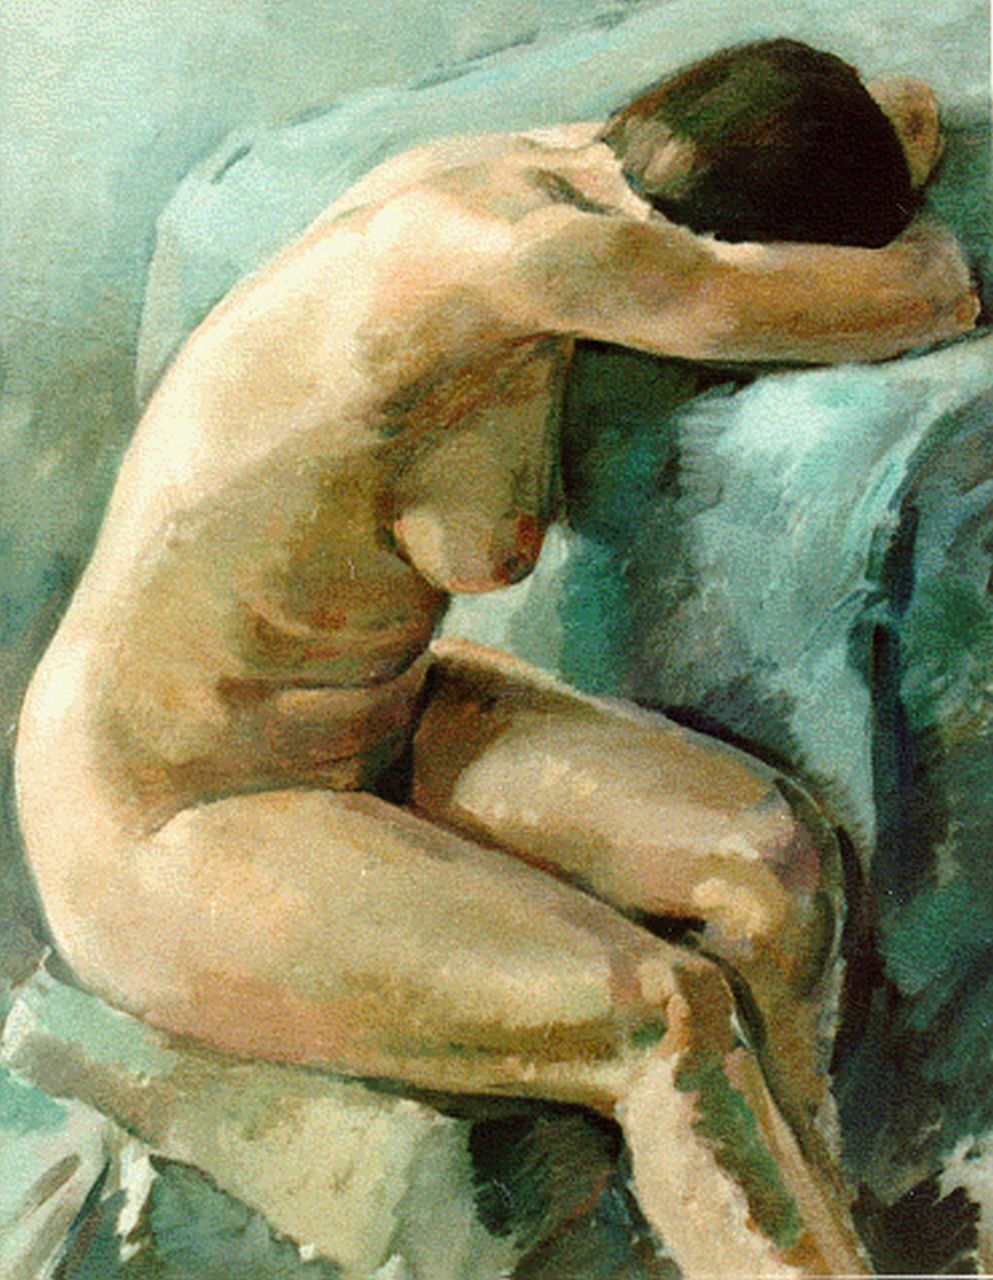 Dalen A. van | Aart van Dalen, A female nude, oil on canvas 99.5 x 80.0 cm